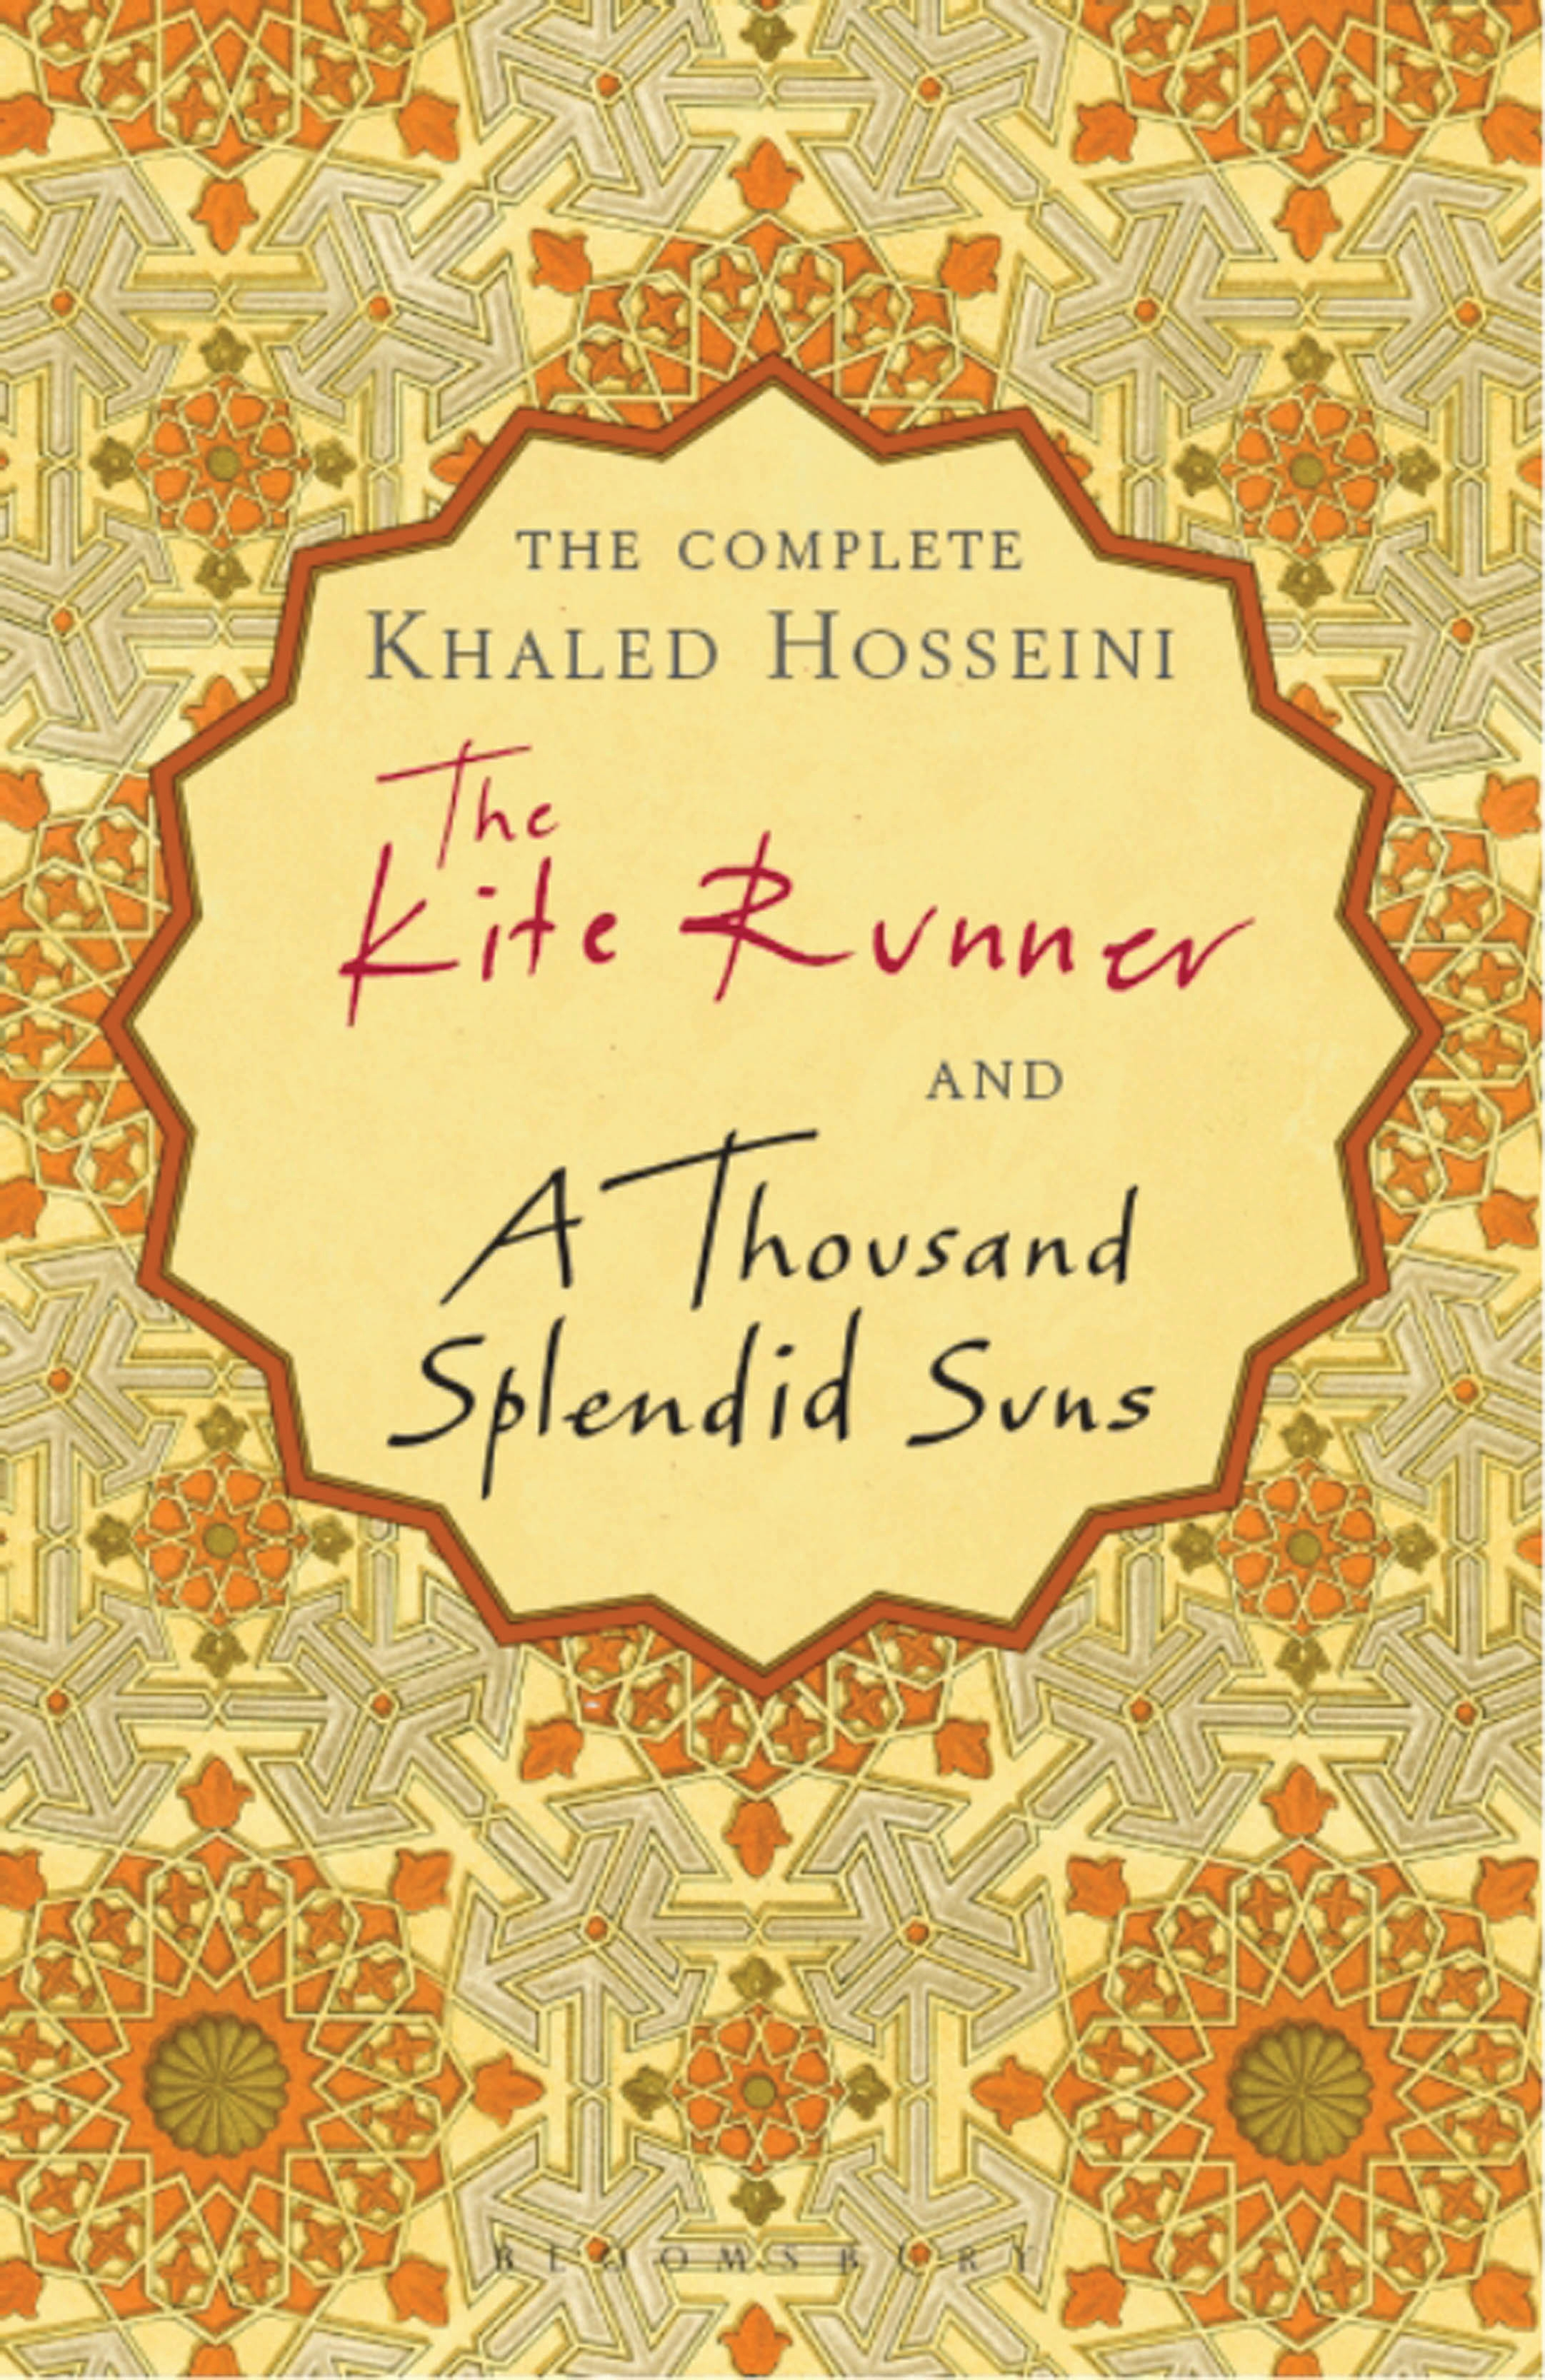 The Complete Khaled Hosseini Digital box set